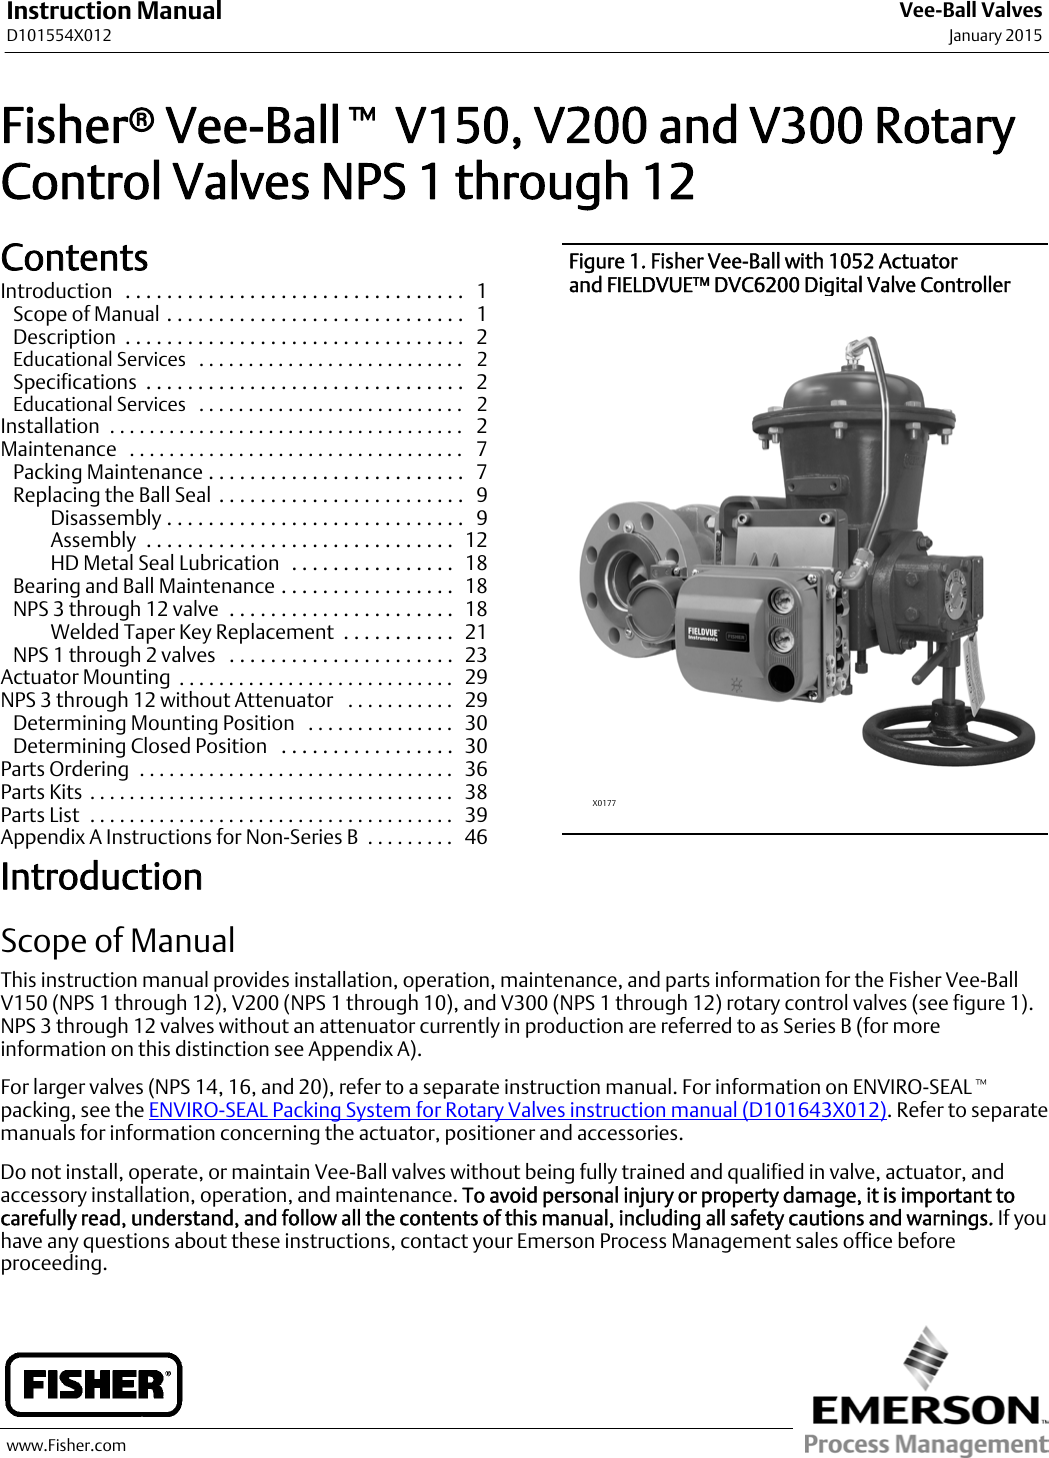 fisher v150 instruction manual